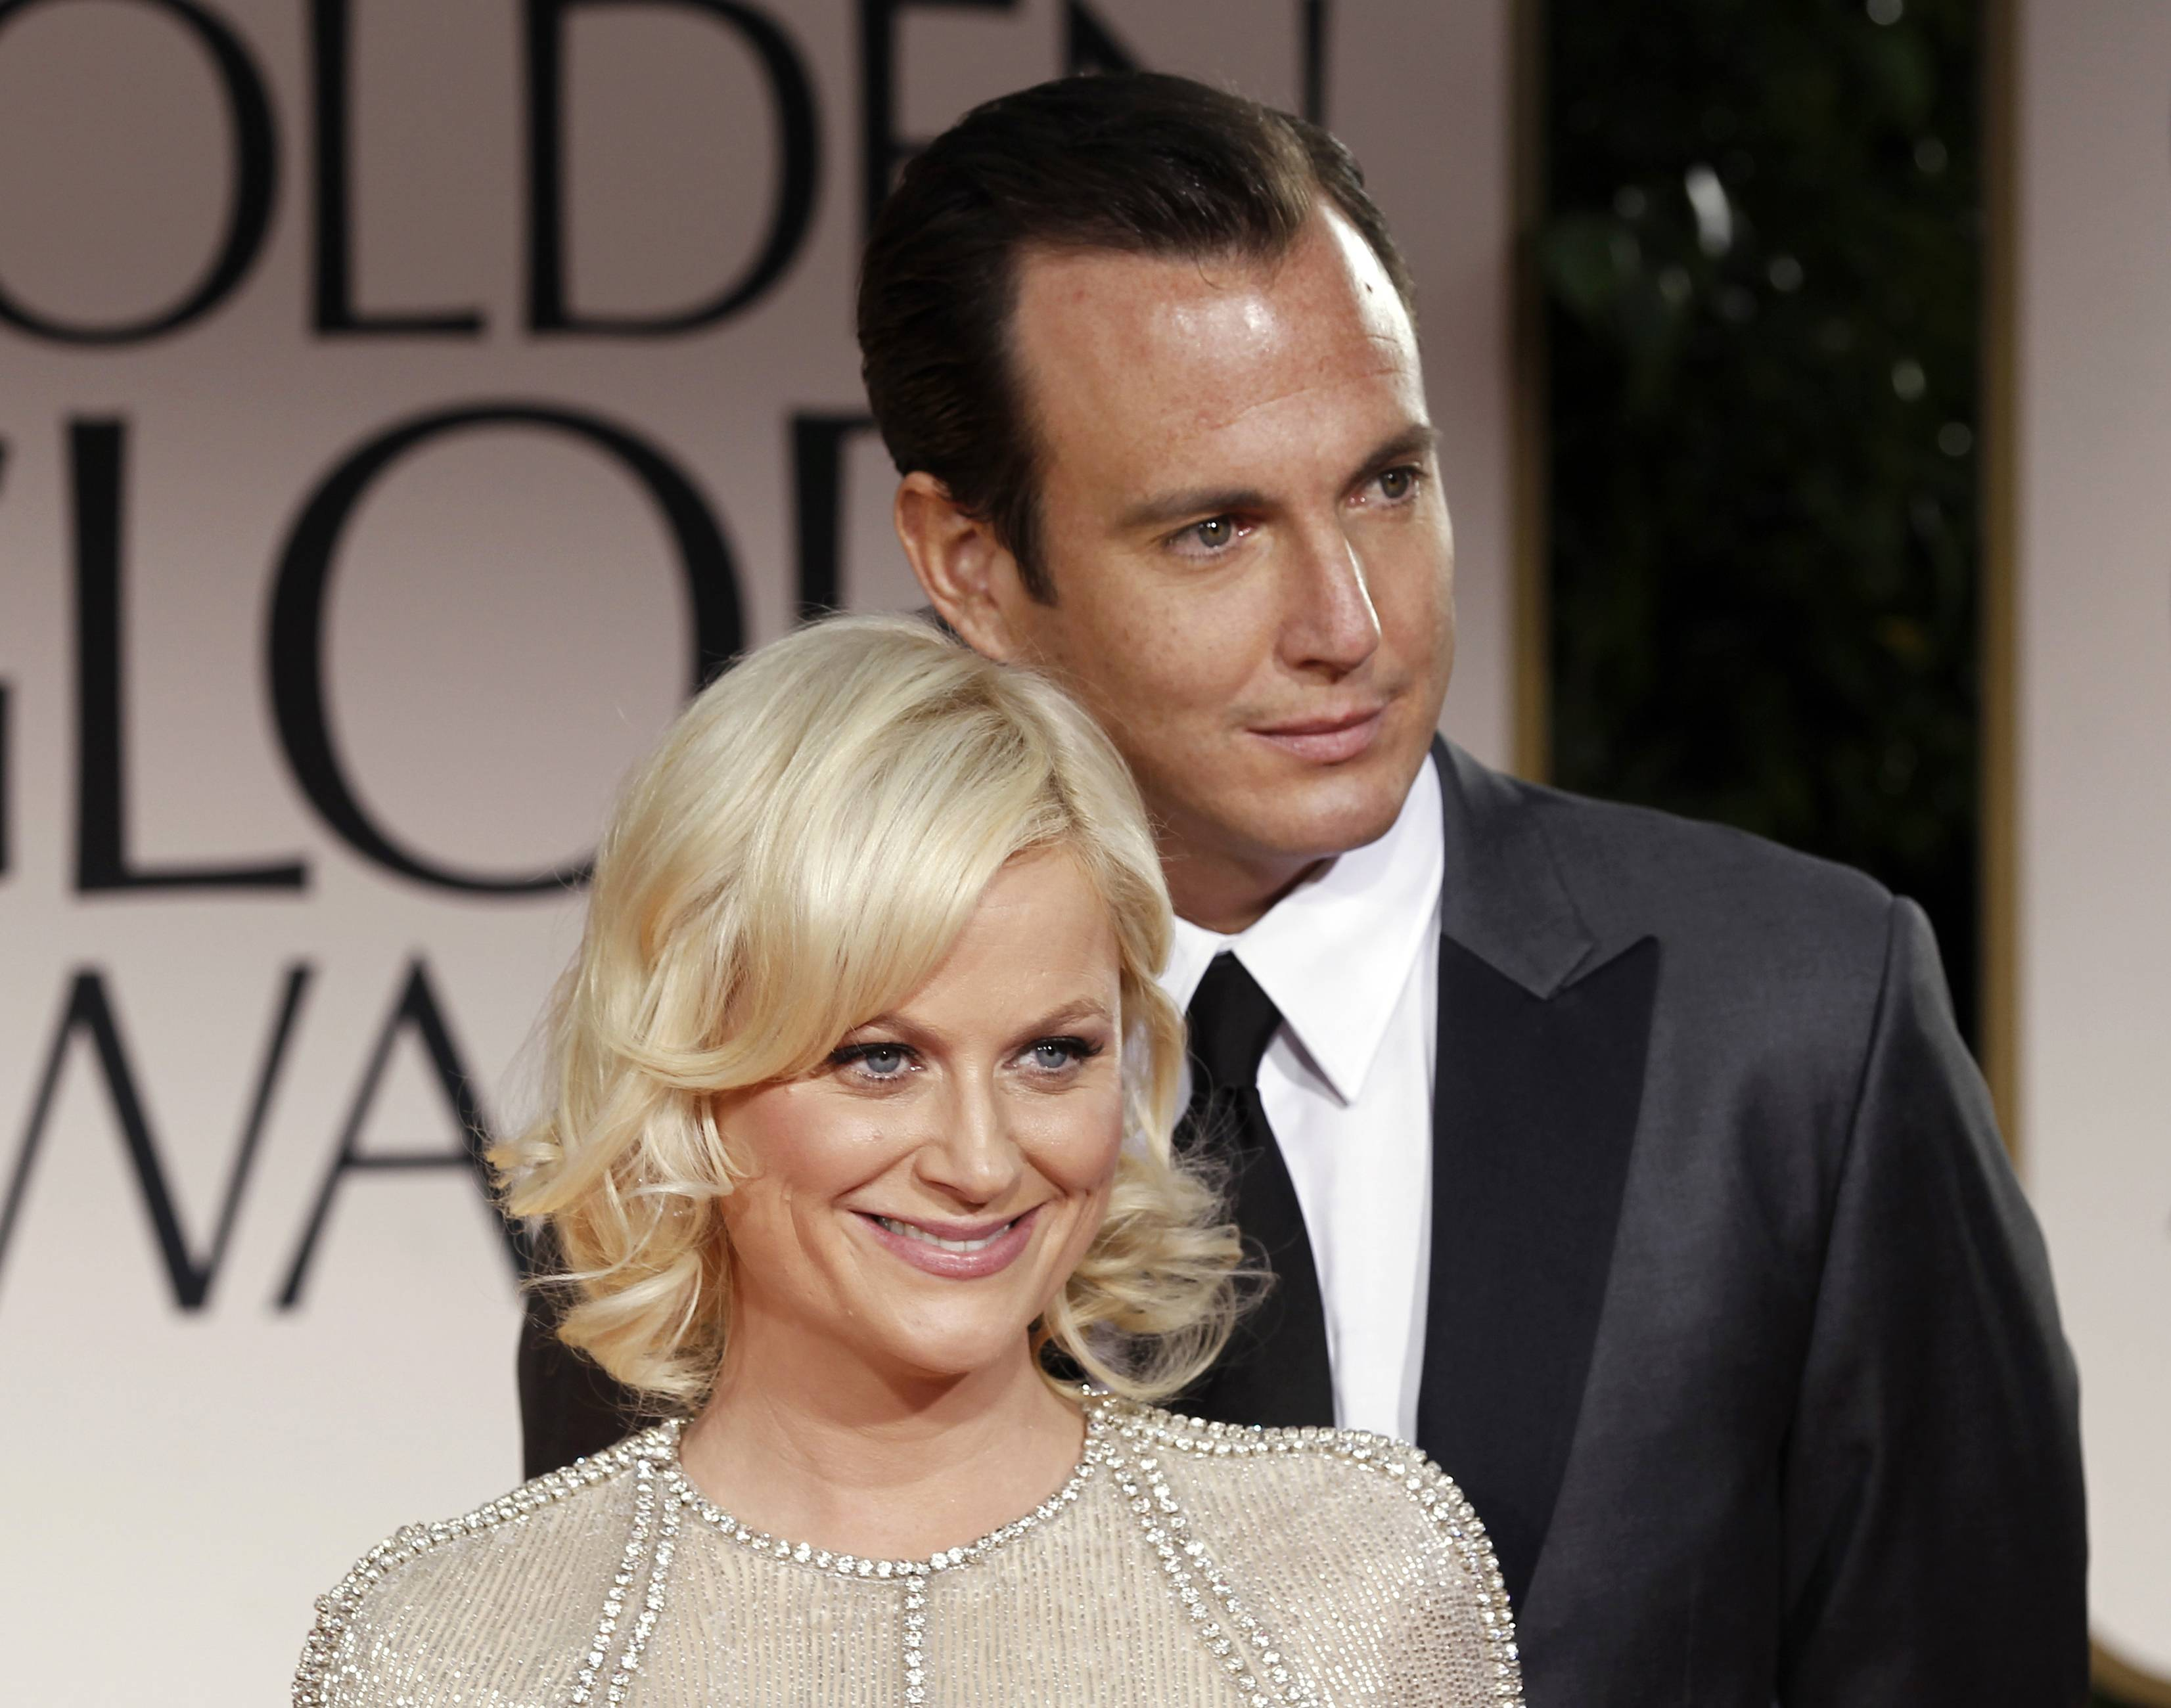 Will Arnett filed for divorce from Any Poehler on April 8 in Los Angeles Superior Court, more than 18 months after the pair announced they were separating and ending their nine-year marriage.